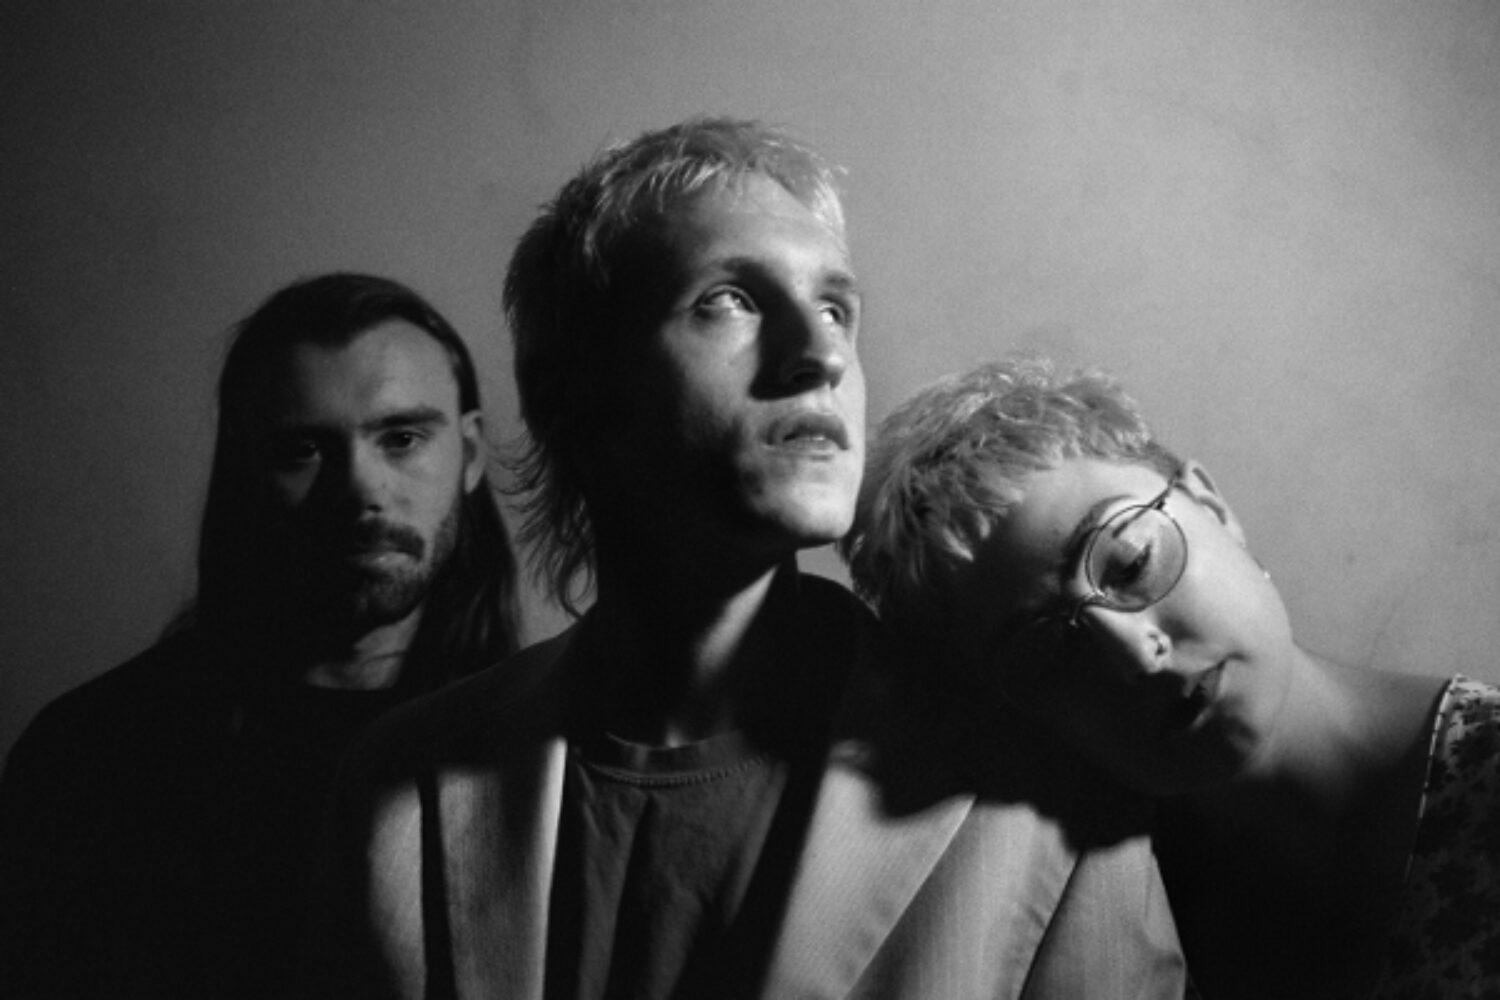 Kagoule get animated in the video for 'Monsieur Automaton'